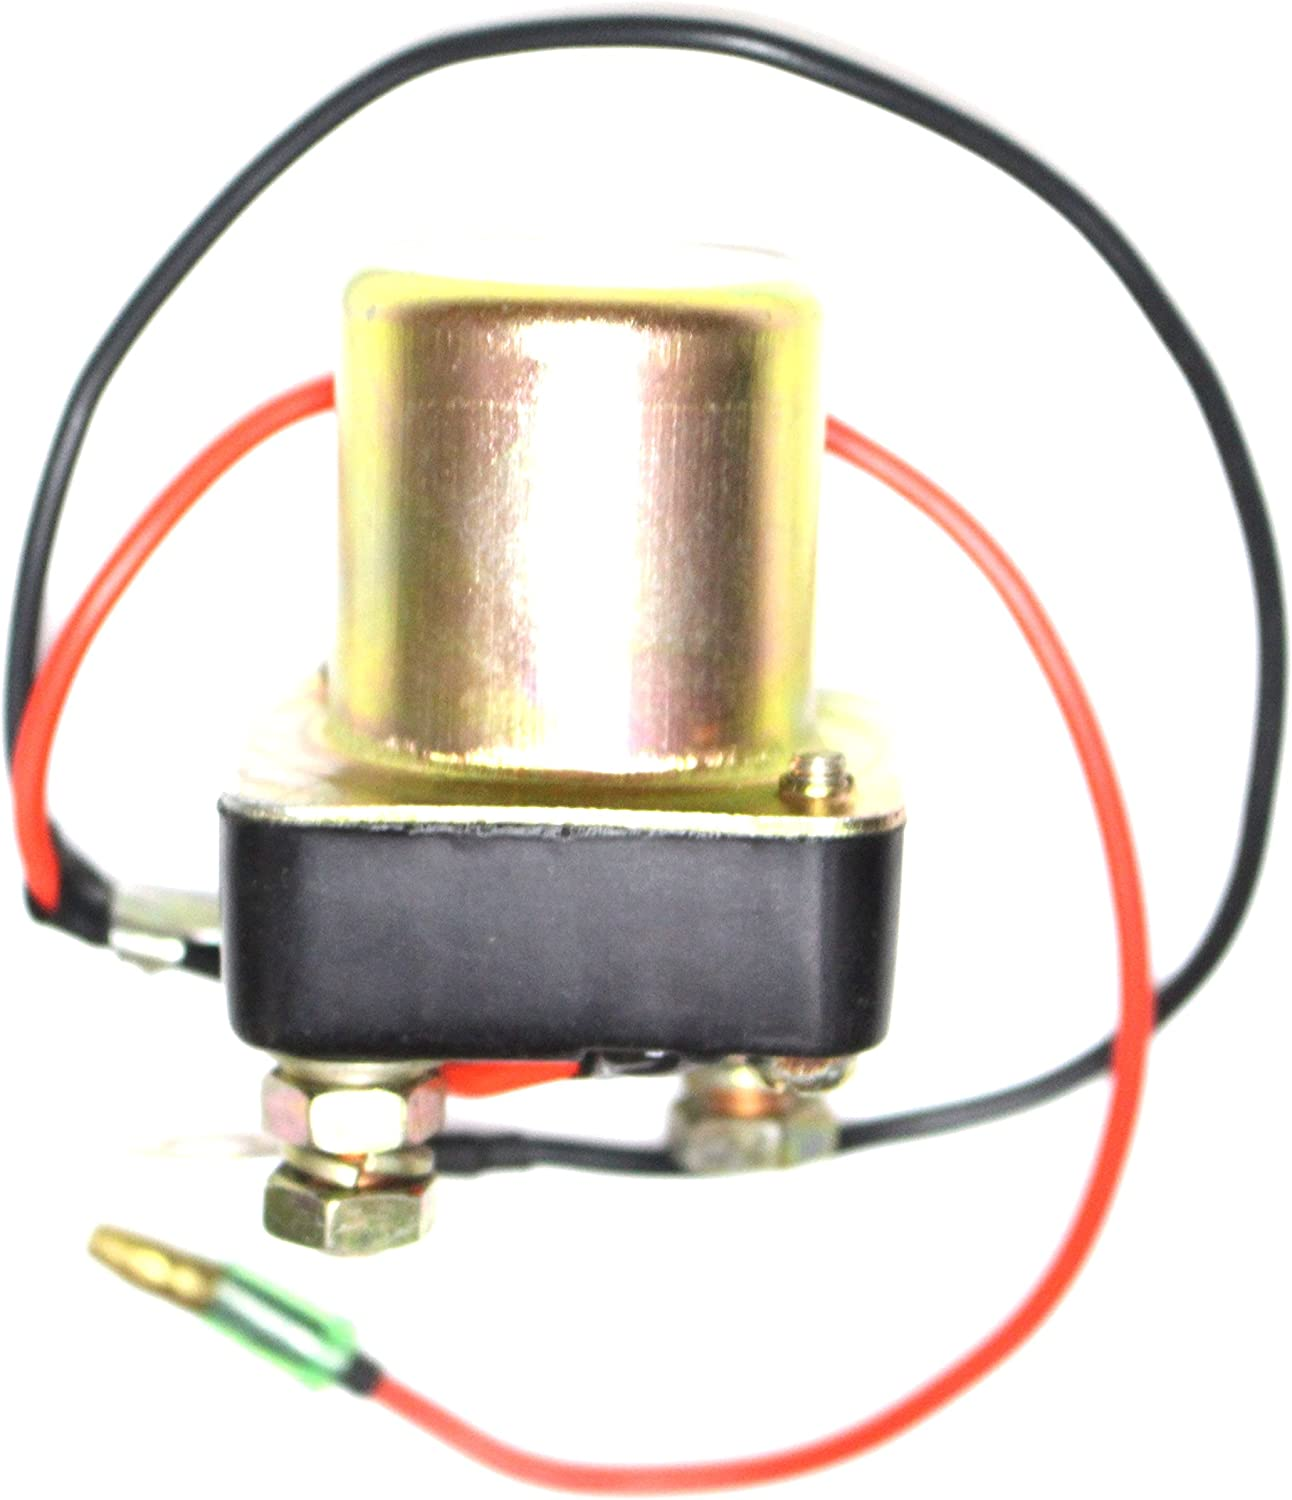 JSP Manufacturing Aftermarket Outboard Trim Relay Solenoid Compatible with Yamaha OEM# 6E5-81941-11-00 / 61A-81941-00-00 Boat 115 135 150 175 200 HP Manufacturer: JSP Manufacturing